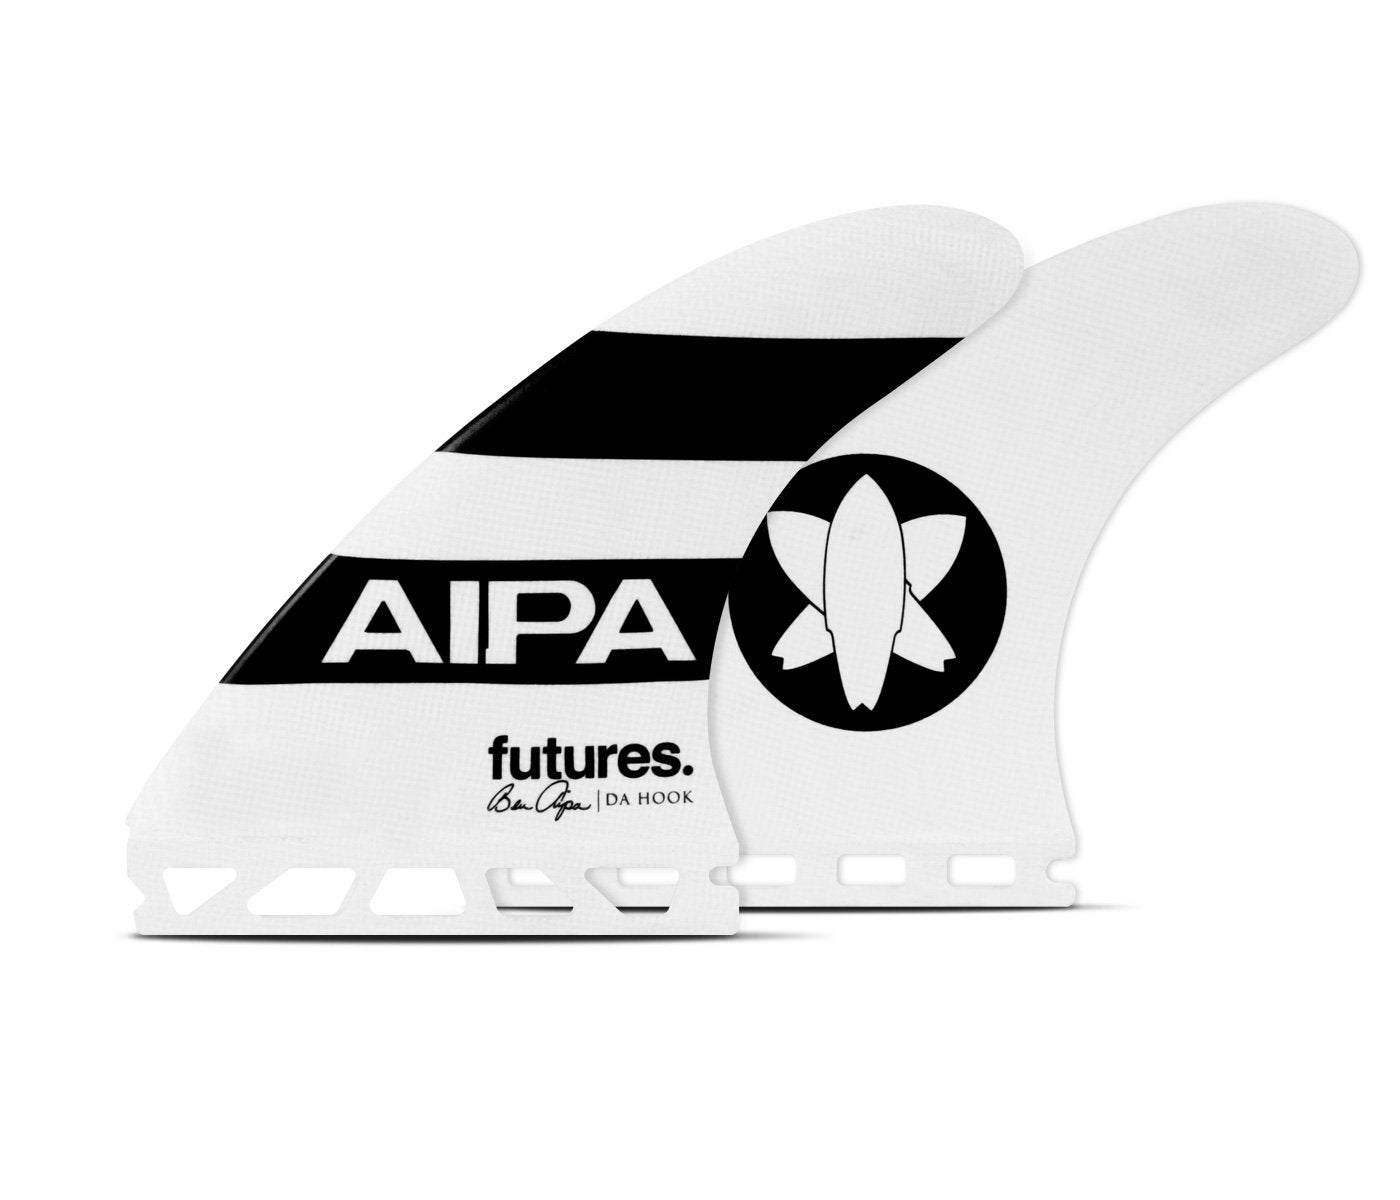 Futures Ben Aipa | Da Hook - Board Store FuturesFins